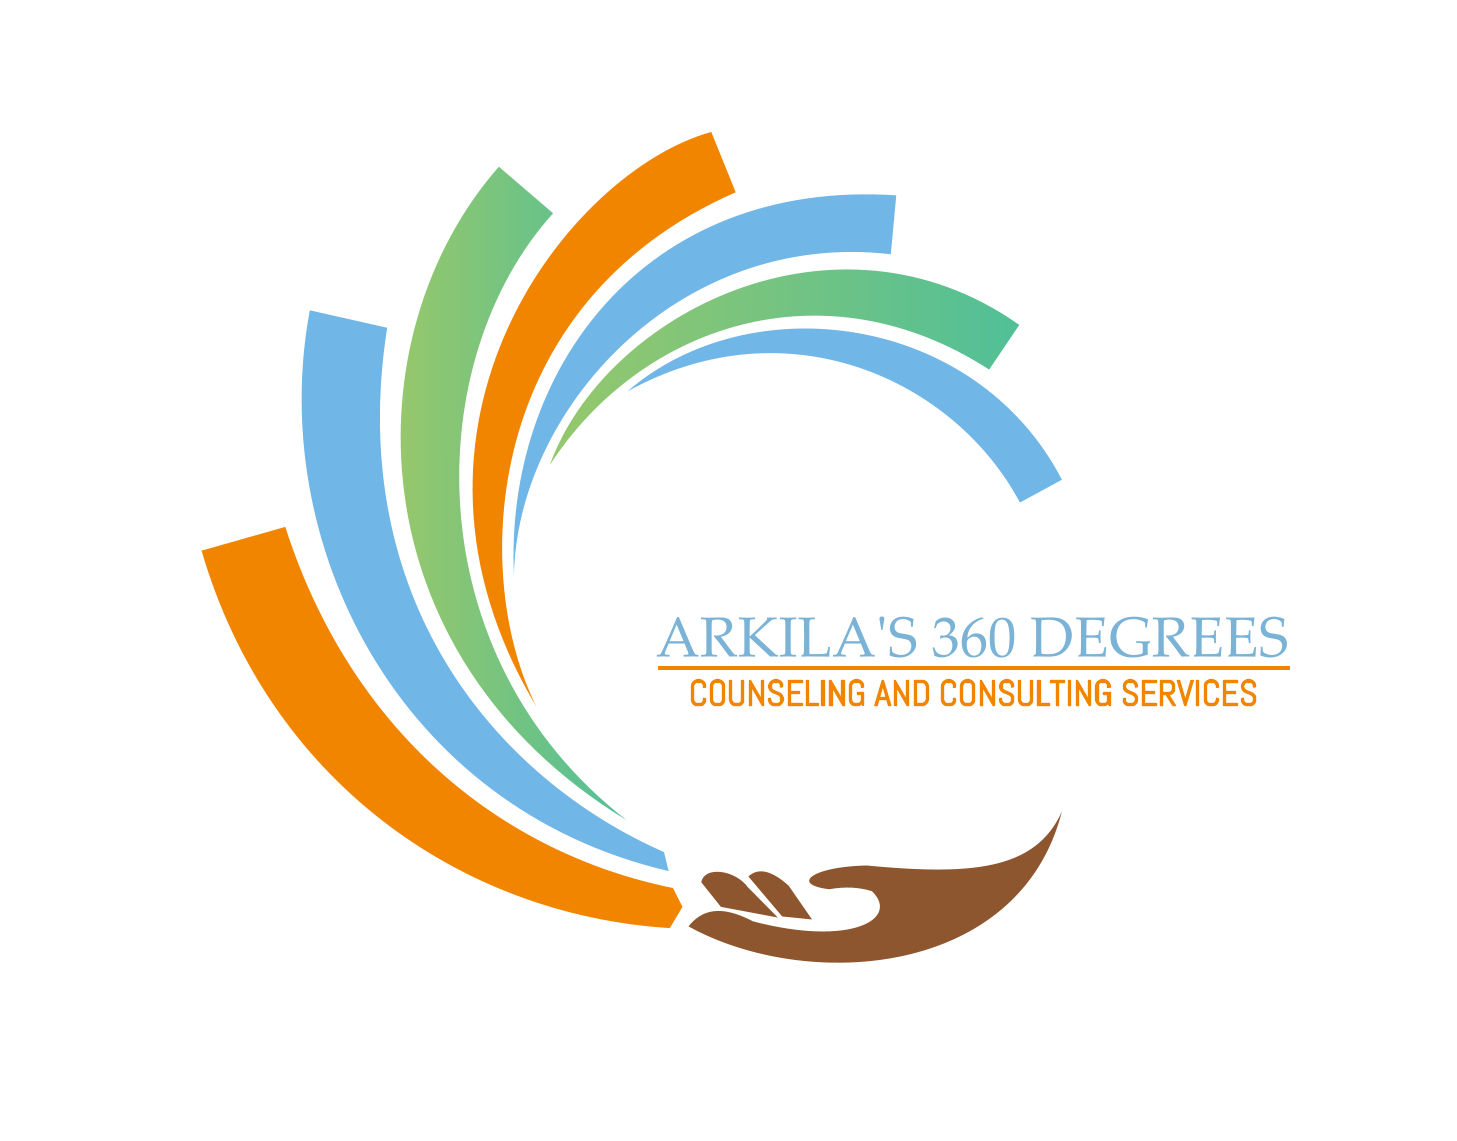 Arkila 360 Degrees Counseling and Consulting Services logo